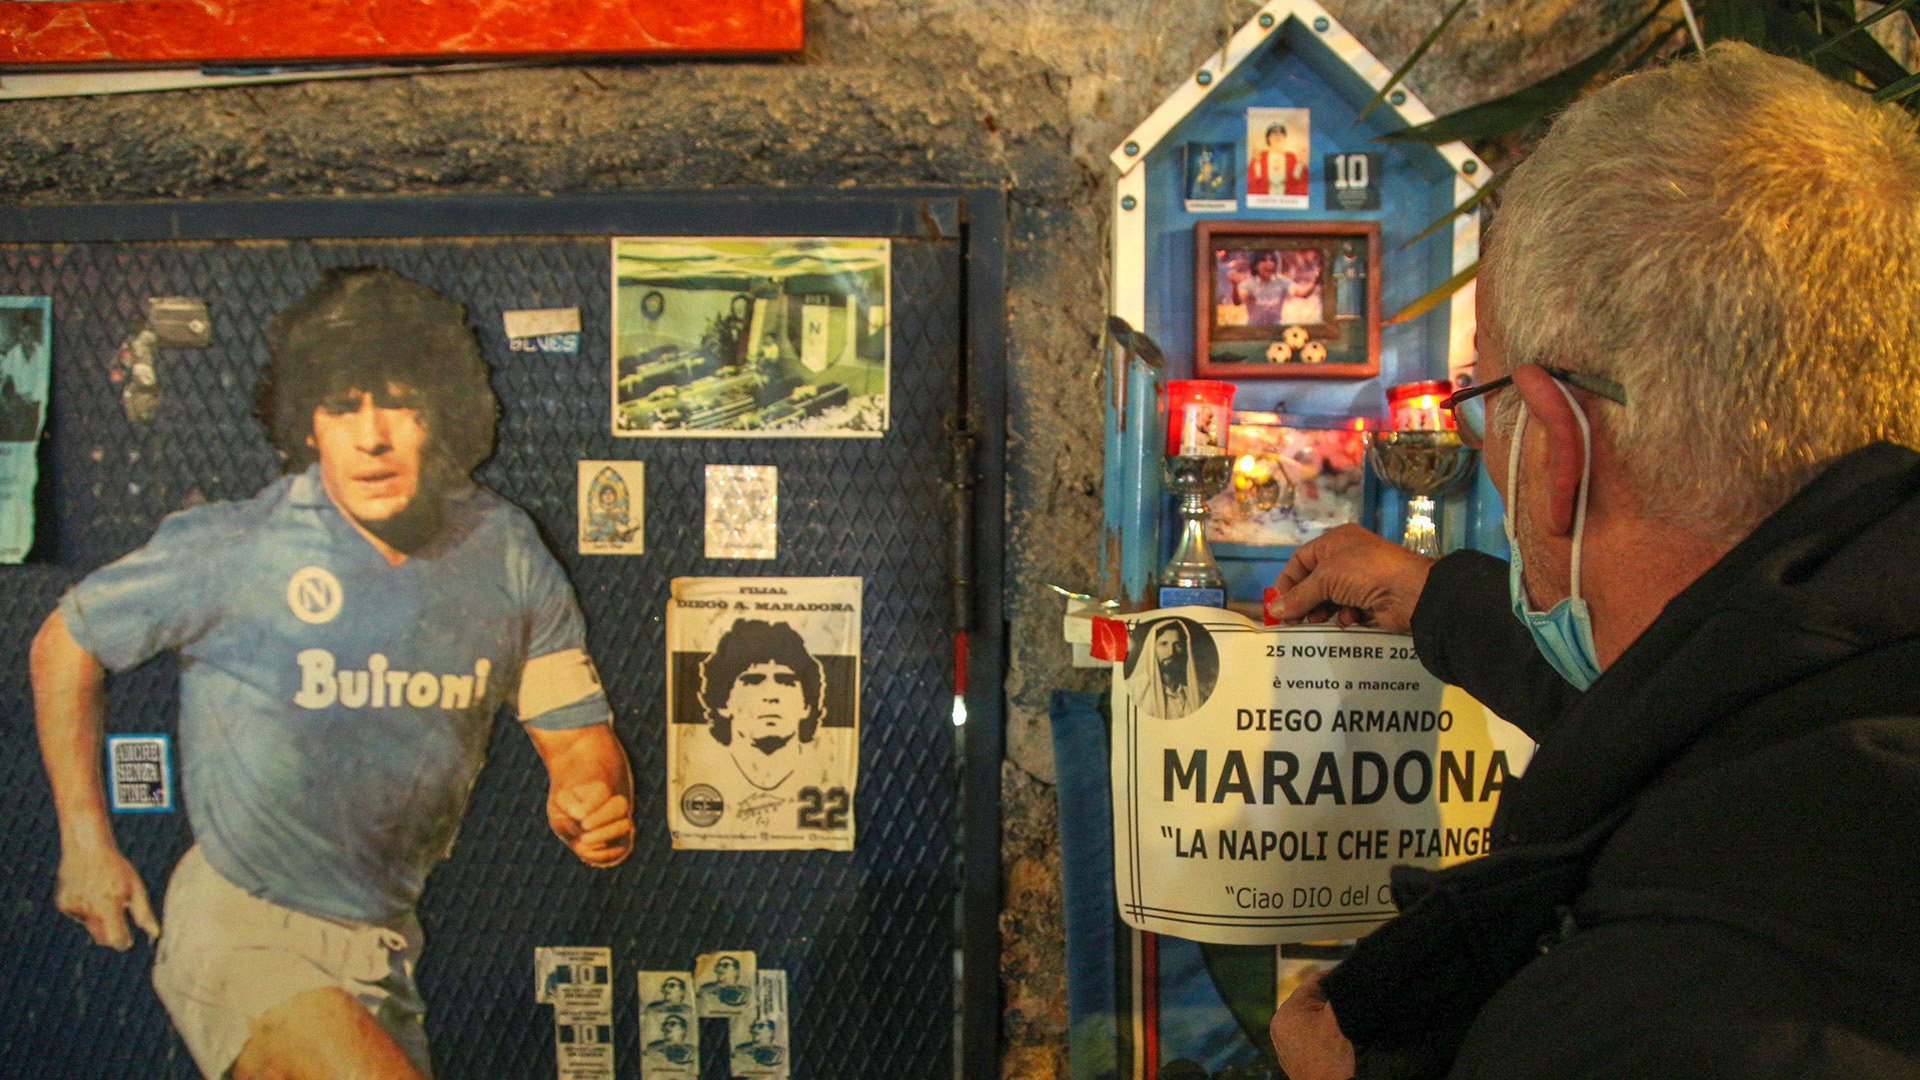 People mourn Madonna's death mistaking for Maradona